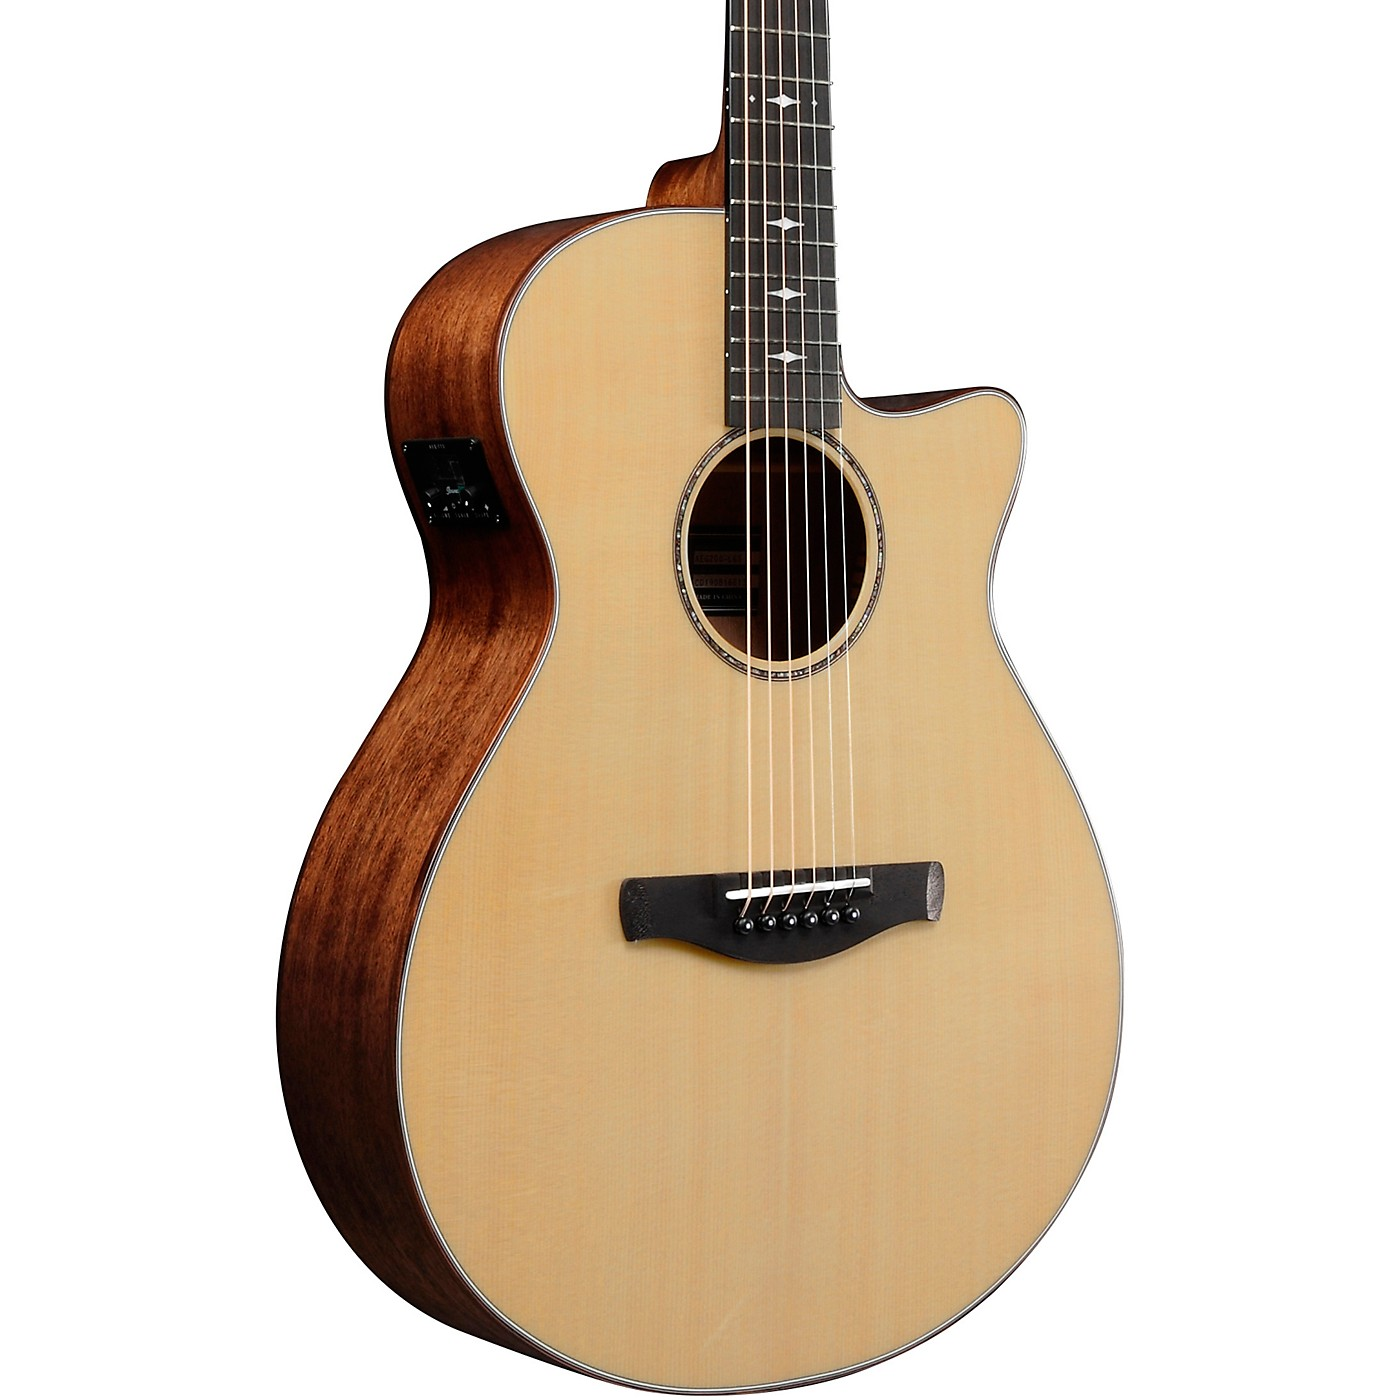 Ibanez AEG200 Solid Top Grand Concert Acoustic-Electric Guitar thumbnail